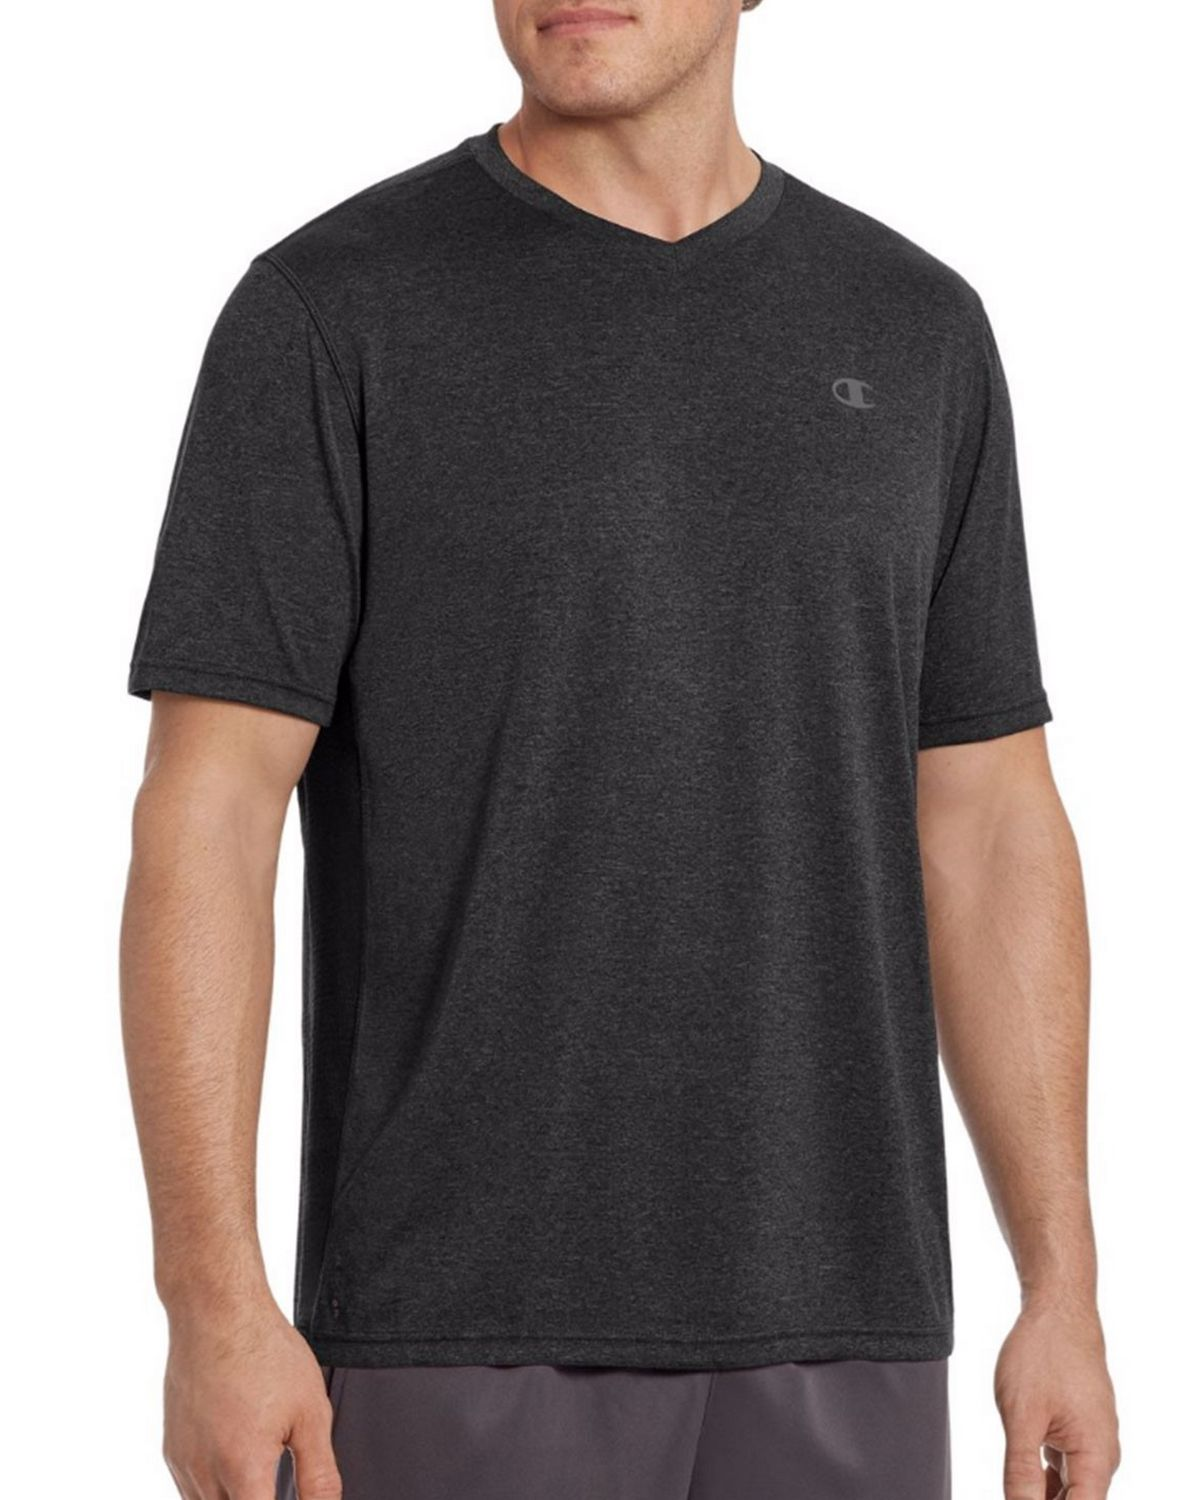 Champion T0770 Vapor Mens V-Neck Tee - Black Heather/Black - L T0770